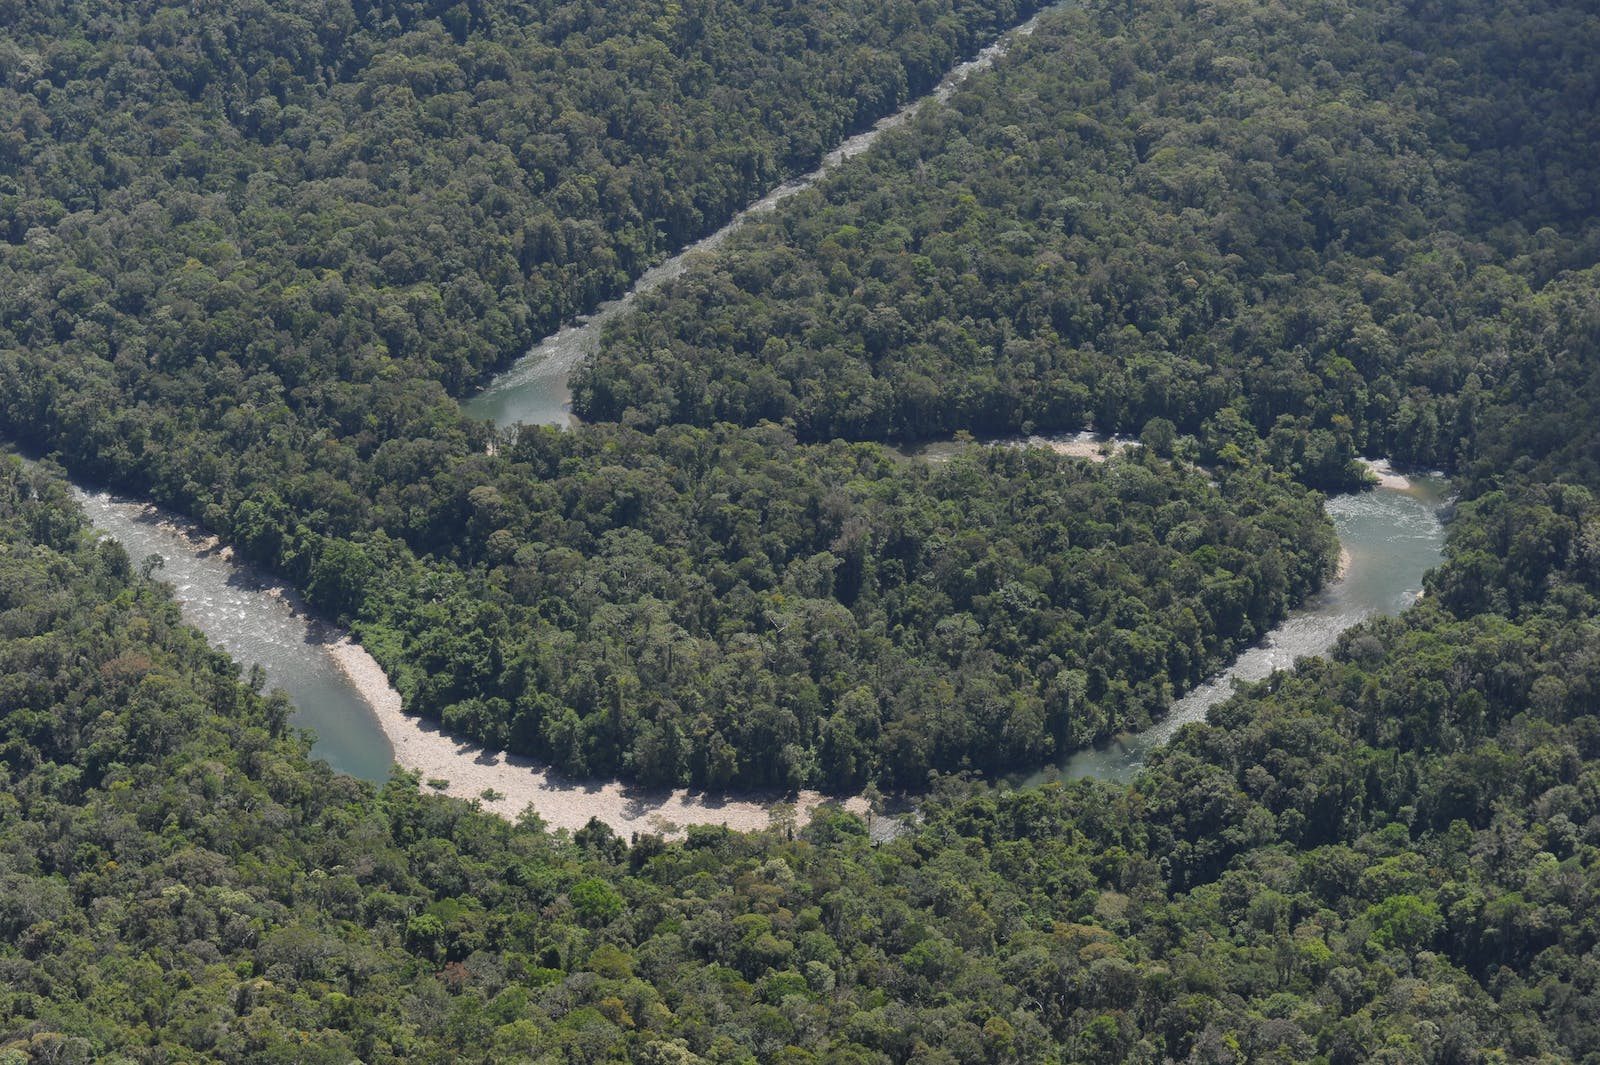 Northern New Guinea Lowland Rain and Freshwater Swamp Forests